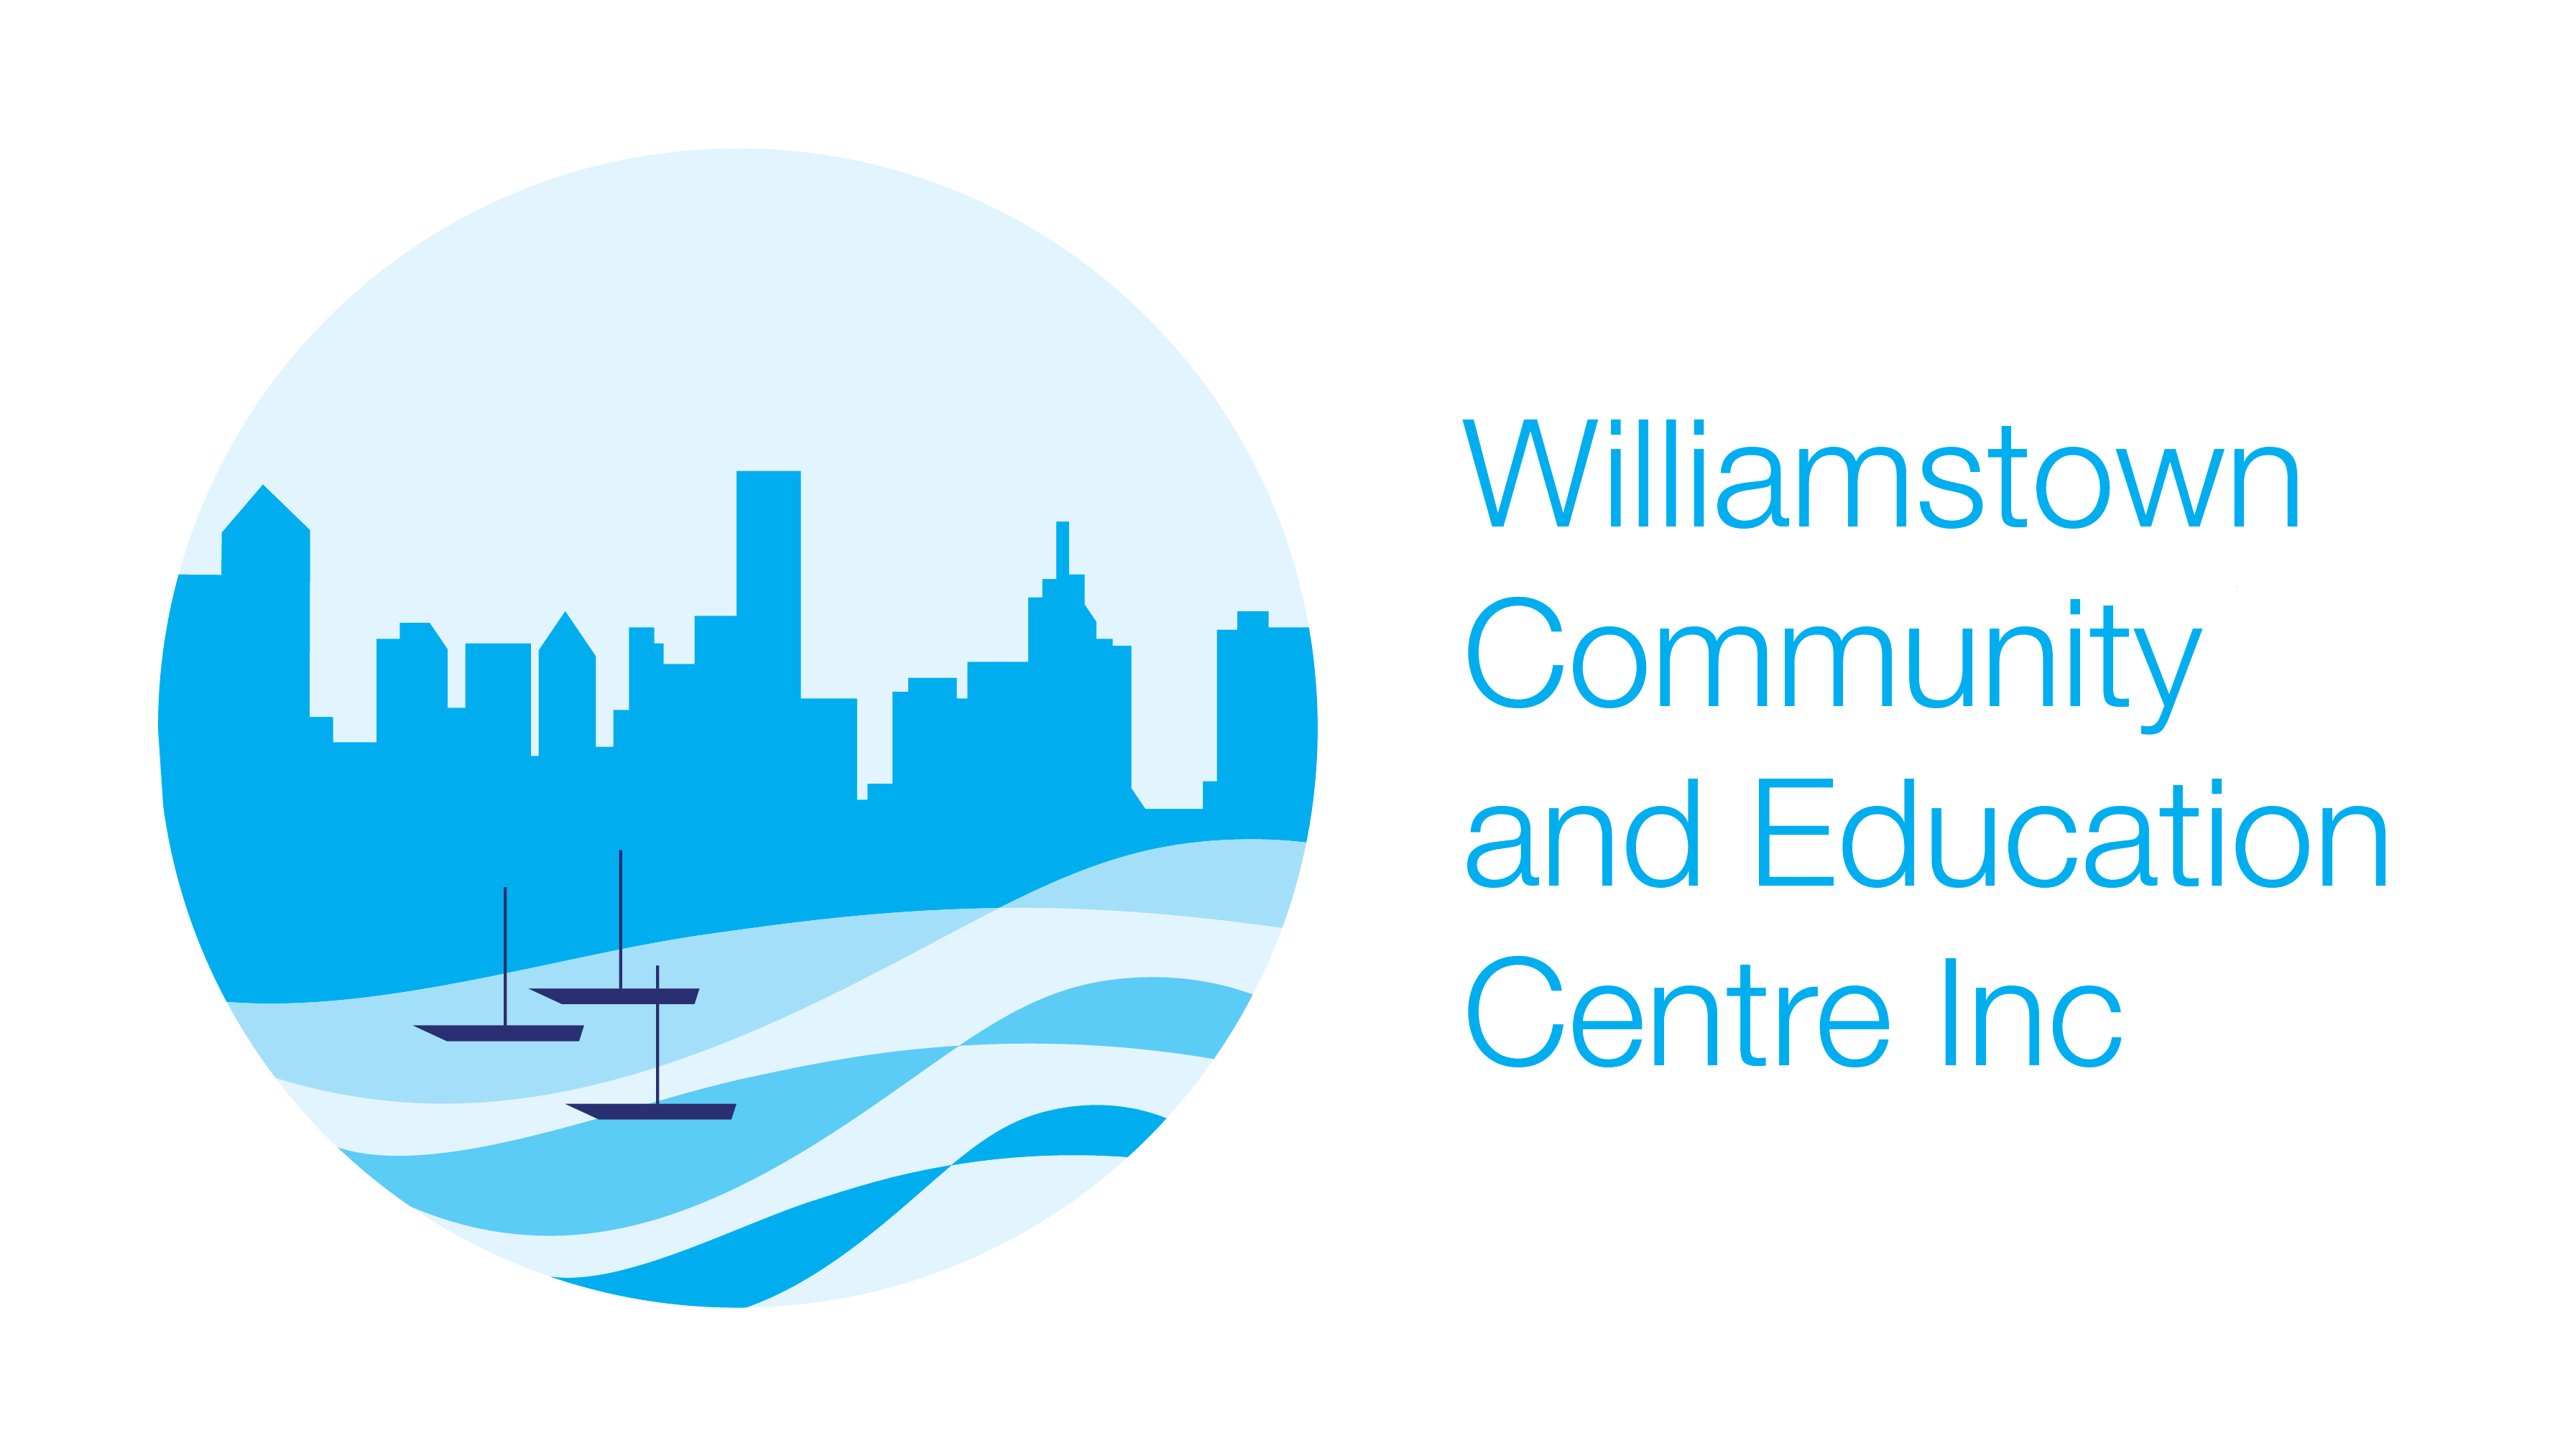 Williamstown Community and Education Centre